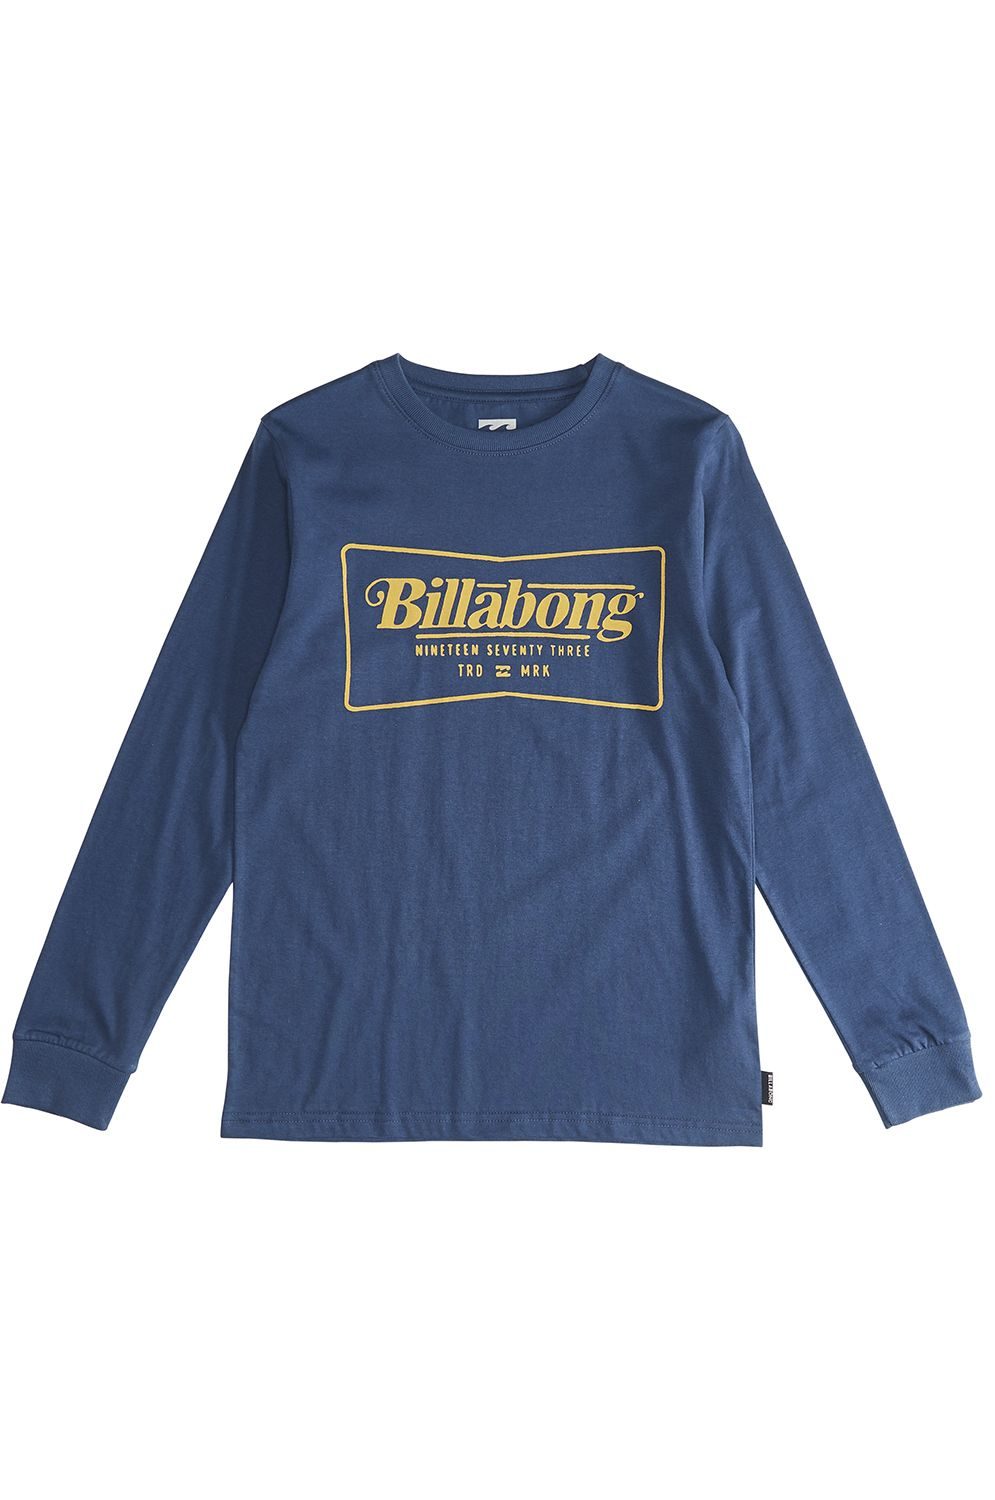 Billabong L-Sleeve TRD MRK Dark Blue